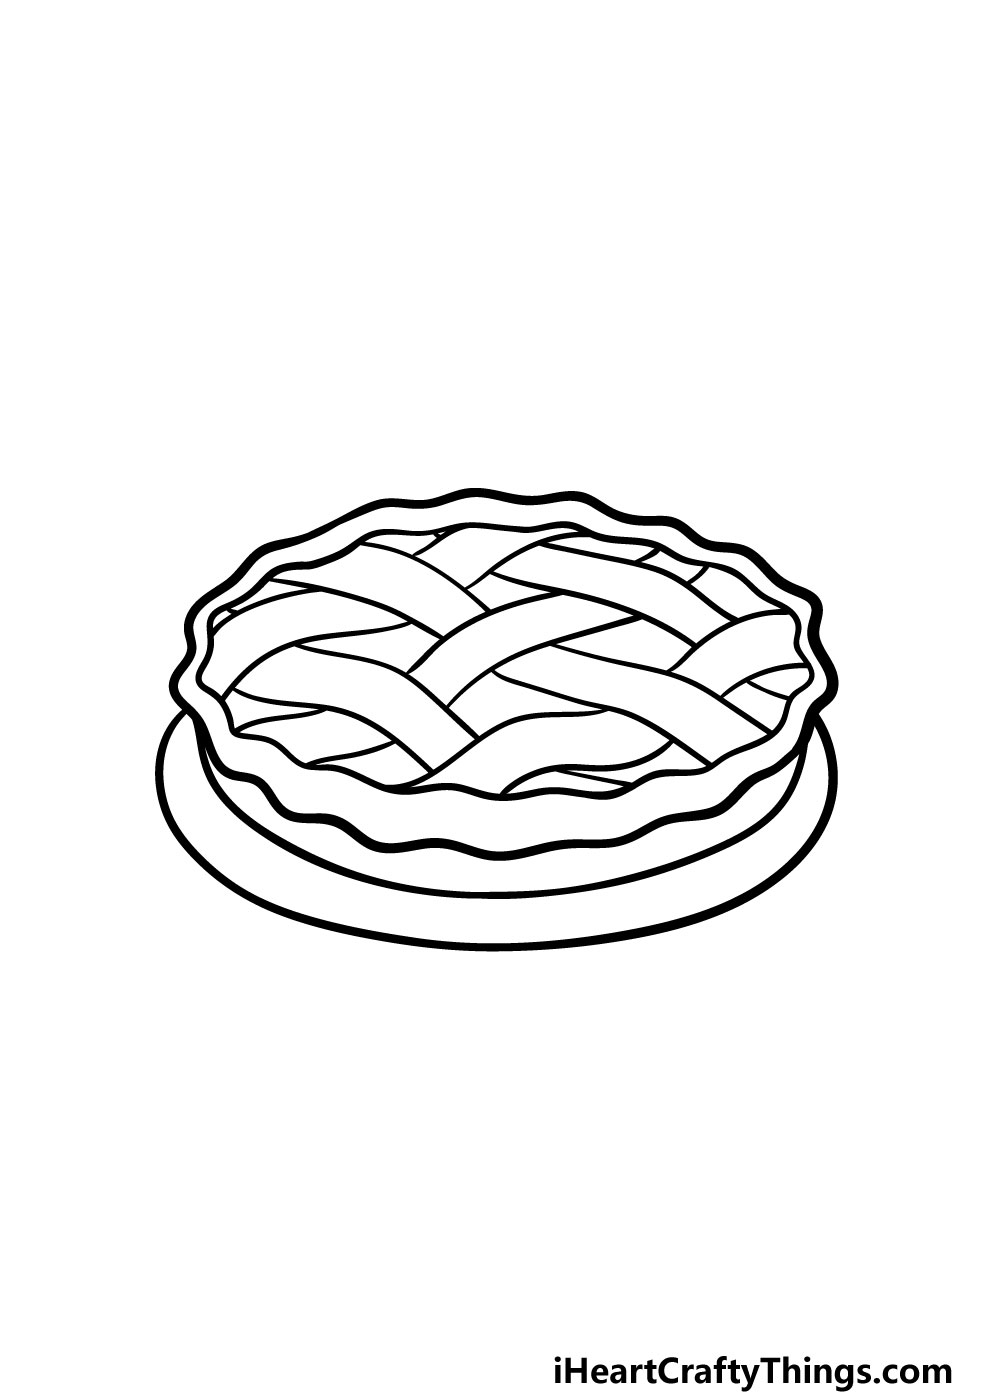 drawing a pie step 4